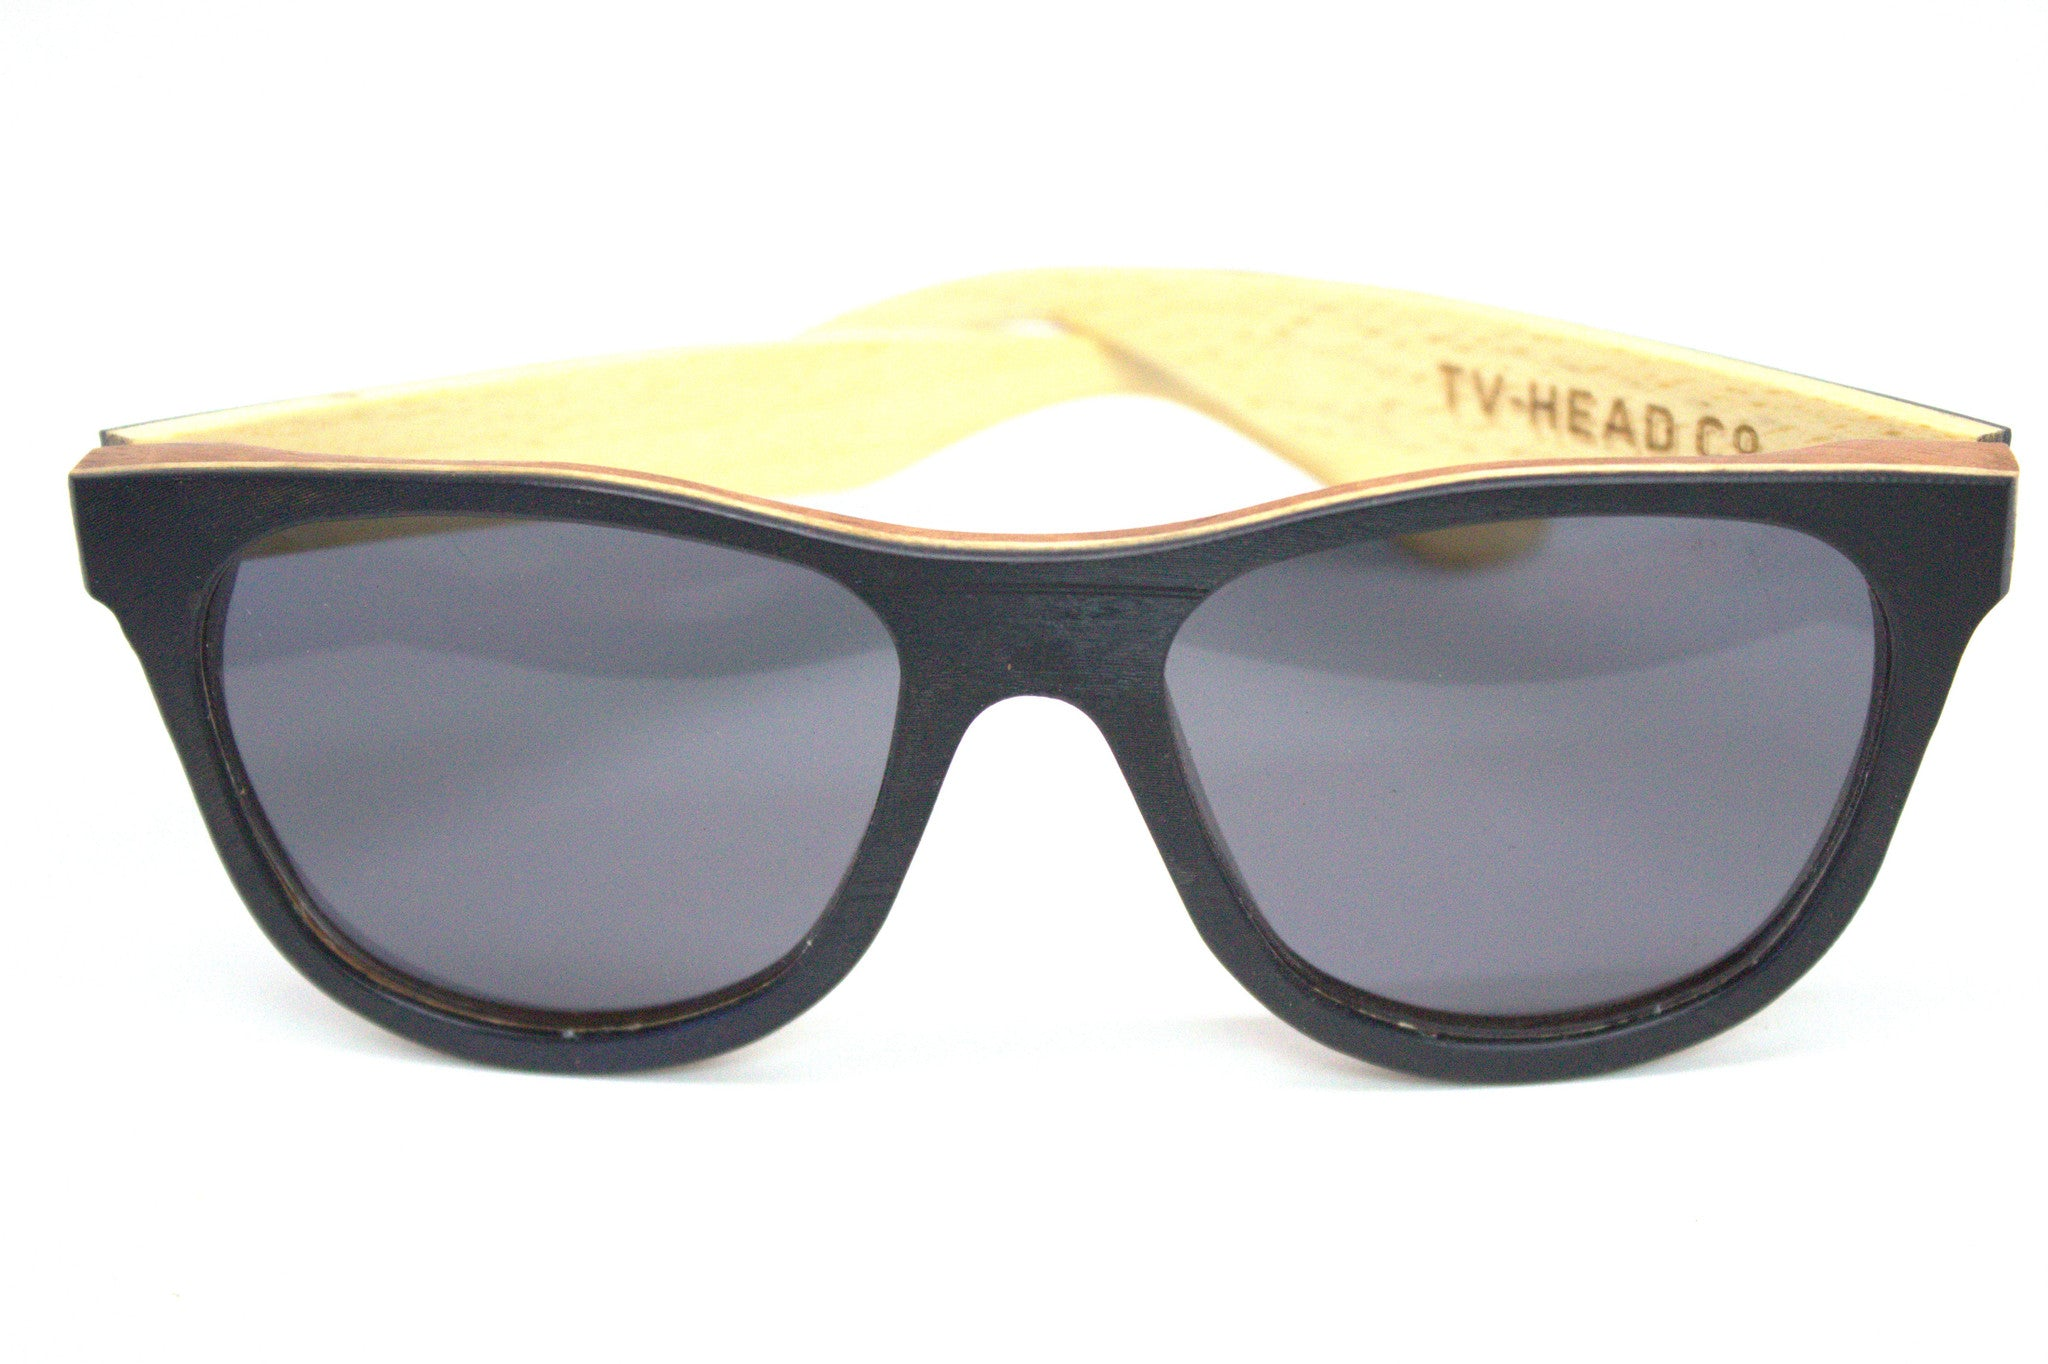 Sunglasses vinyl records wooden polarized spring loaded